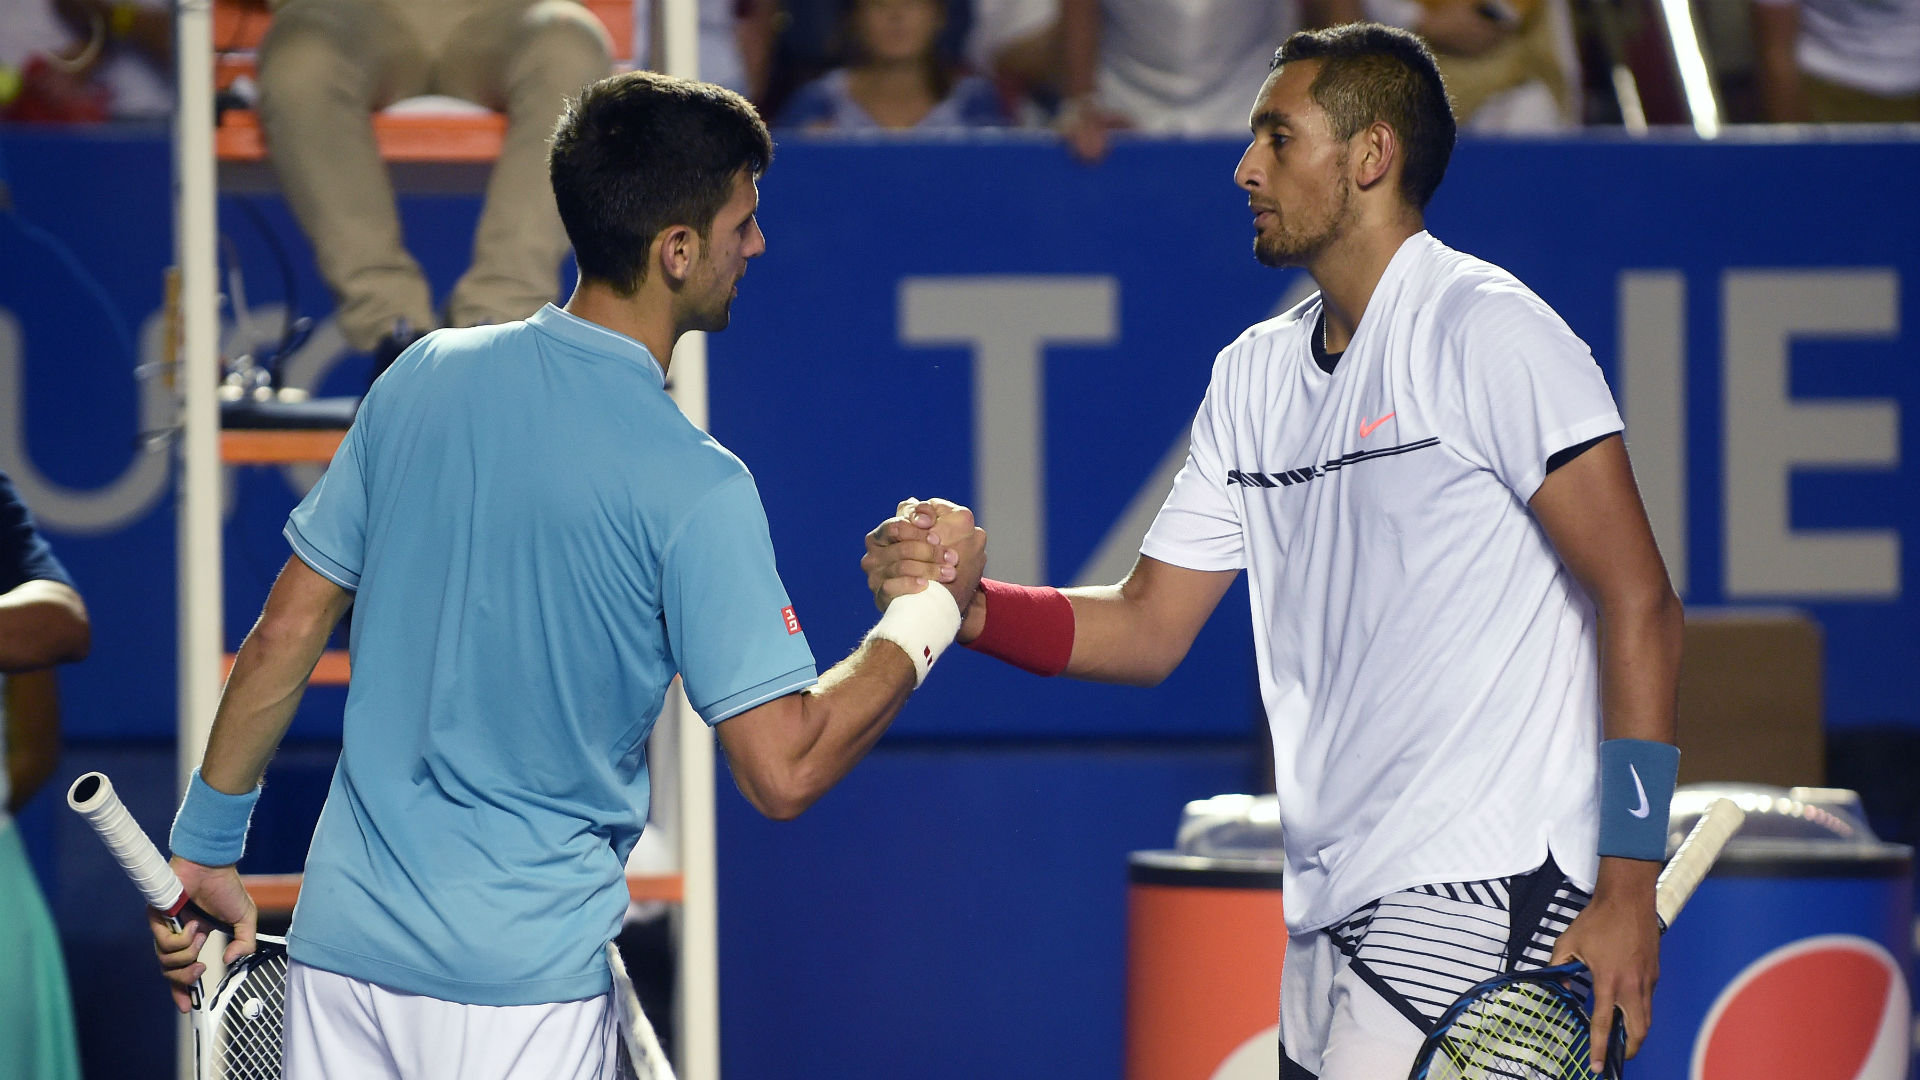 Nick Kyrgios gives shell-shocked Novak Djokovic the Mexican wave